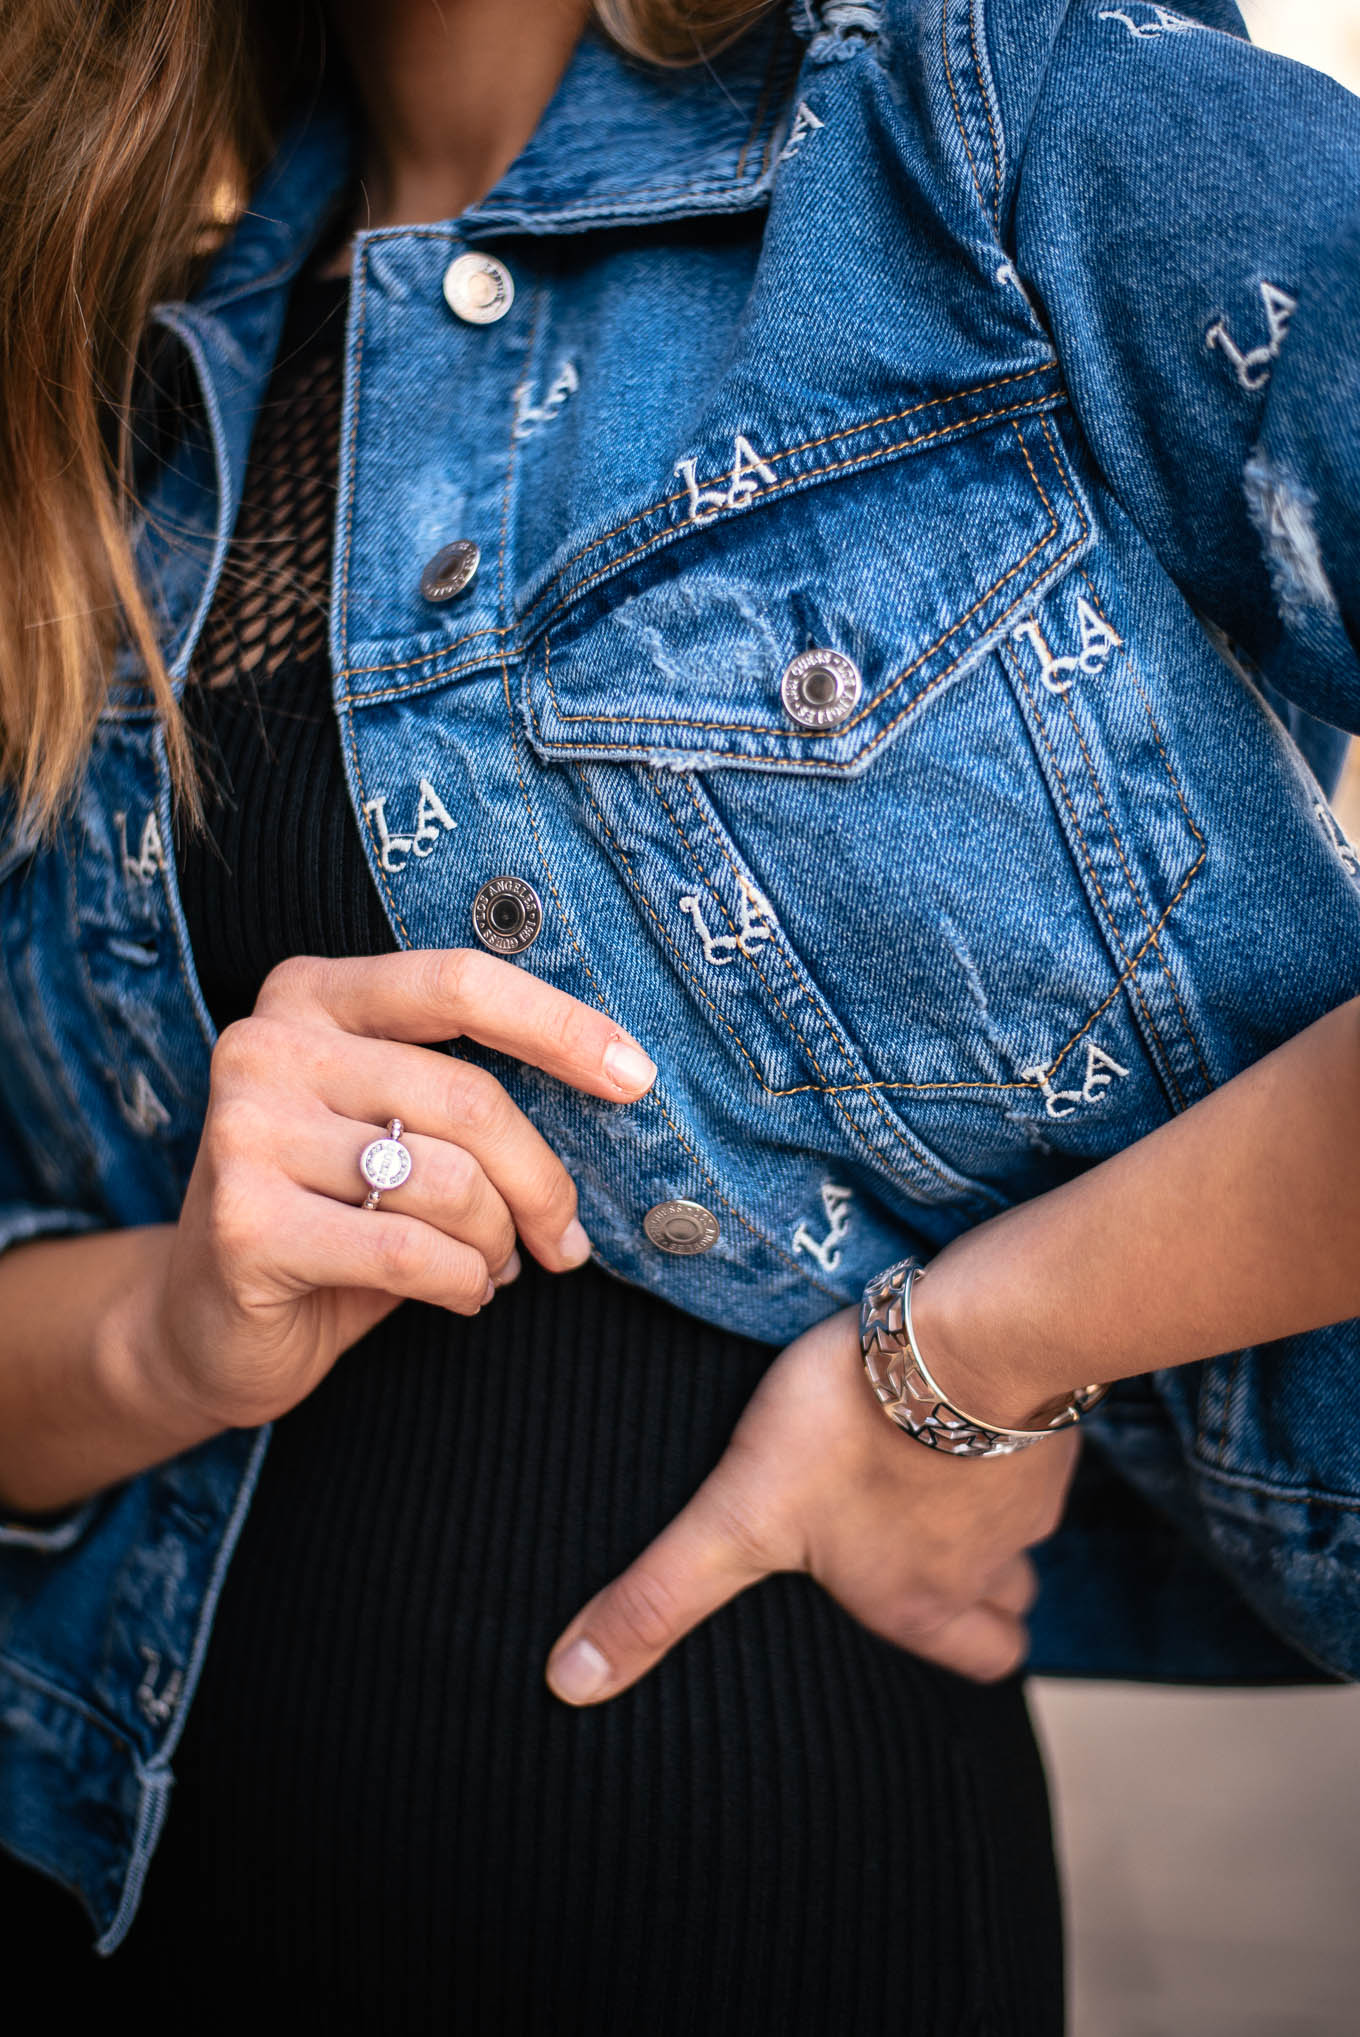 LA denim jacket